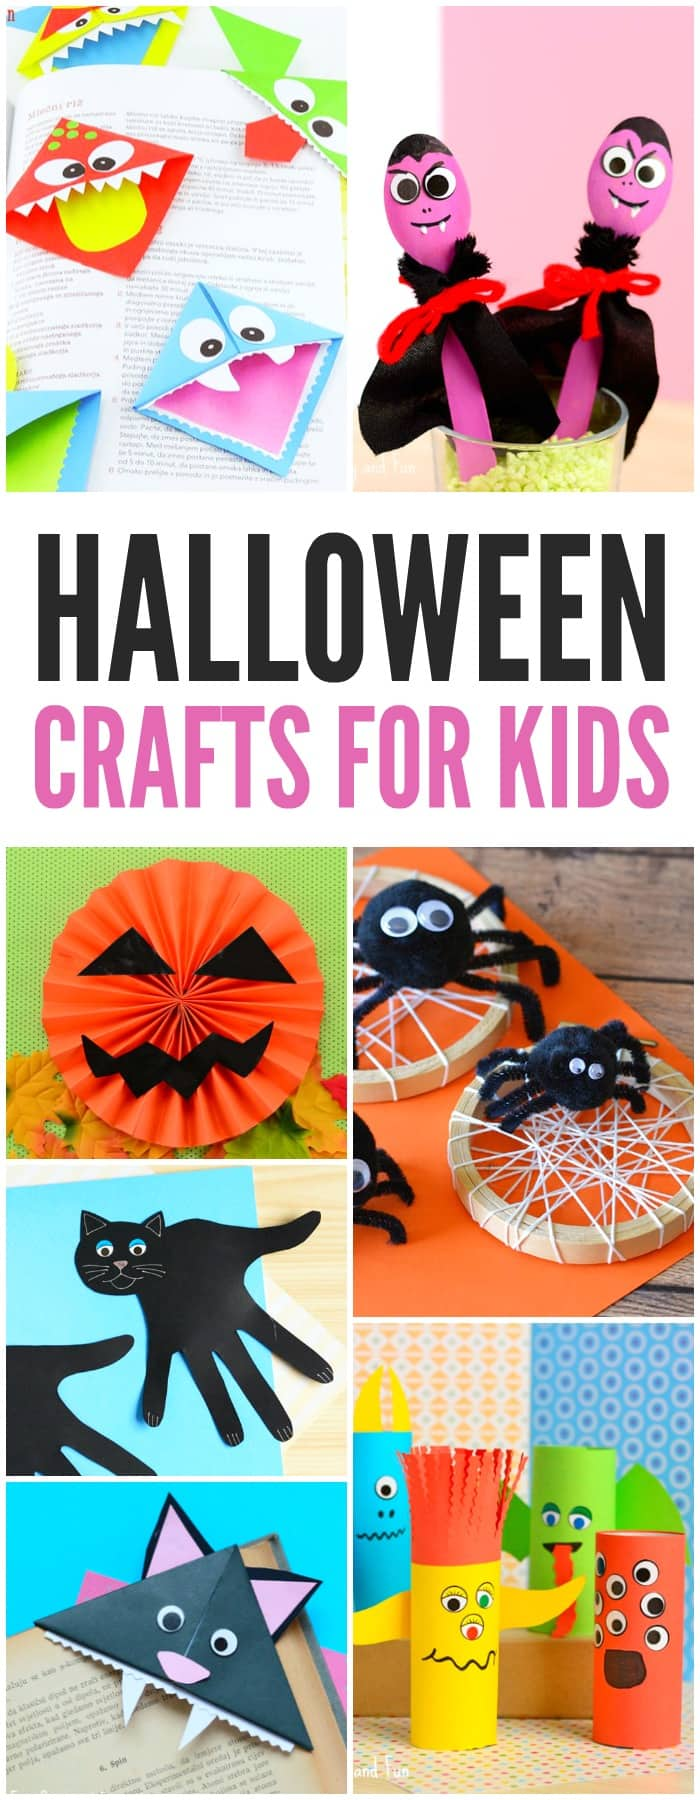 image about Halloween Craft Printable referred to as 25+ Halloween Crafts for Young children - Artwork and Craft Tutorials